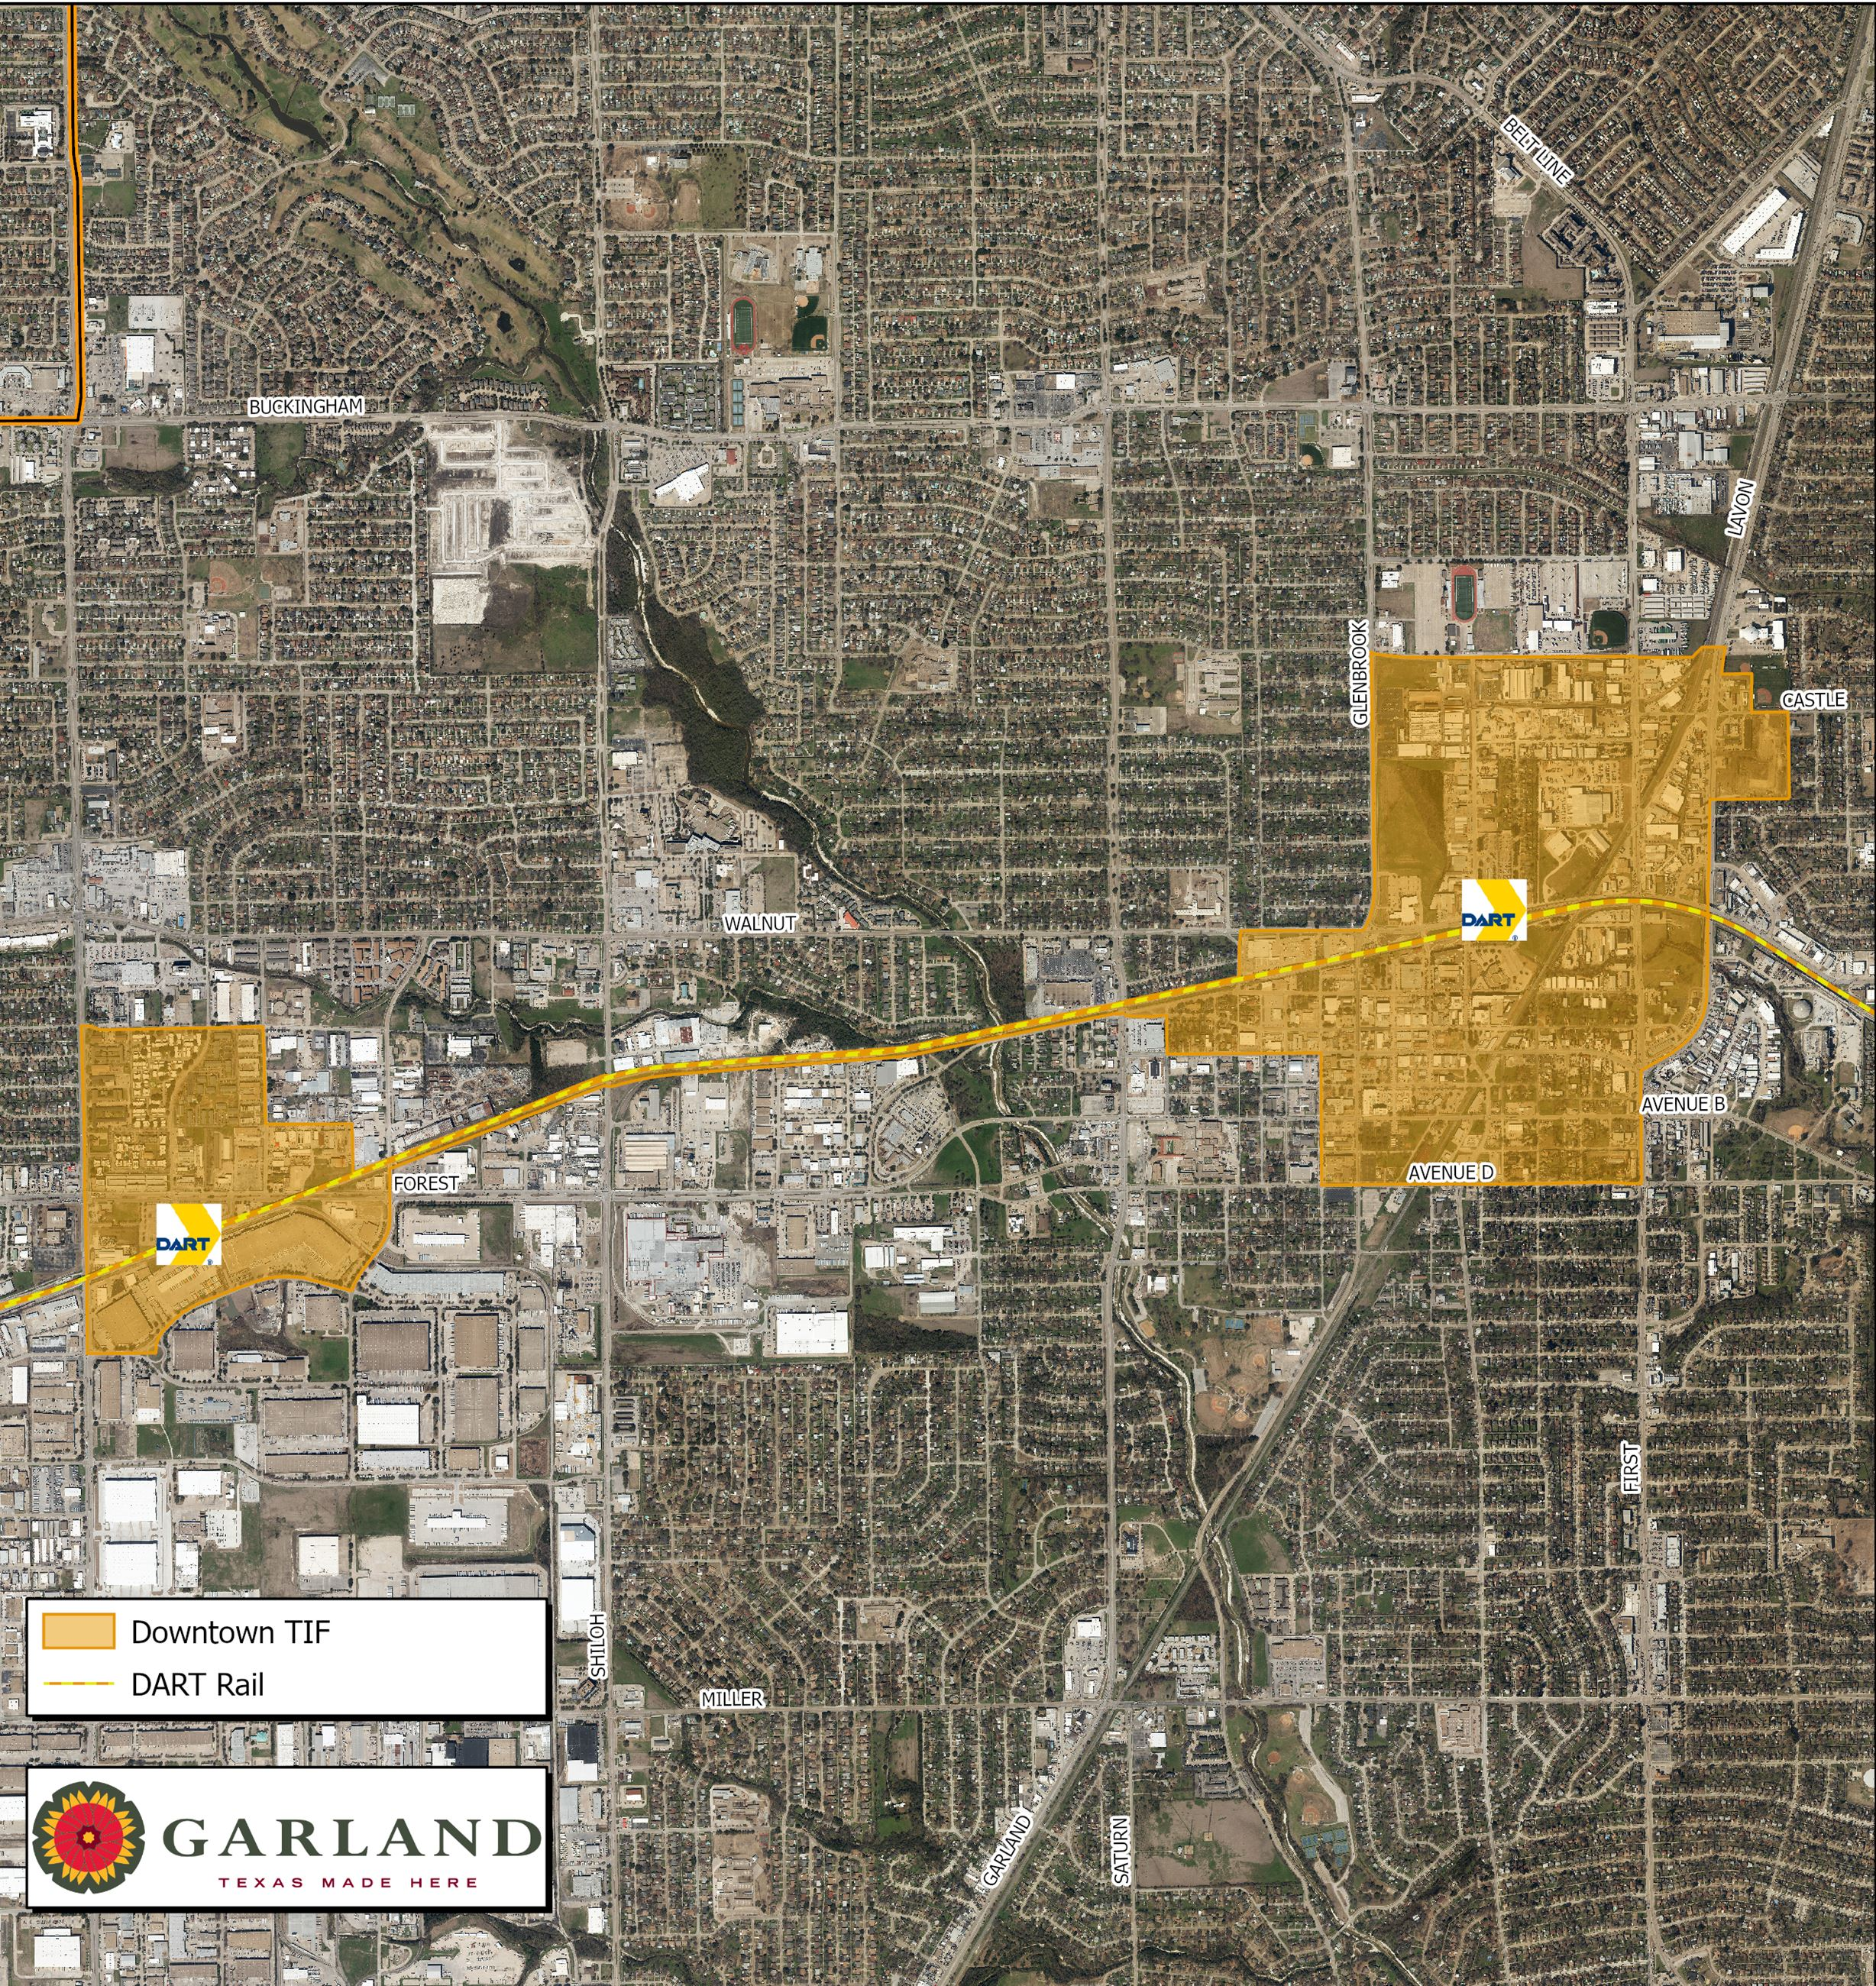 map of the Downtown TIF district in Garland